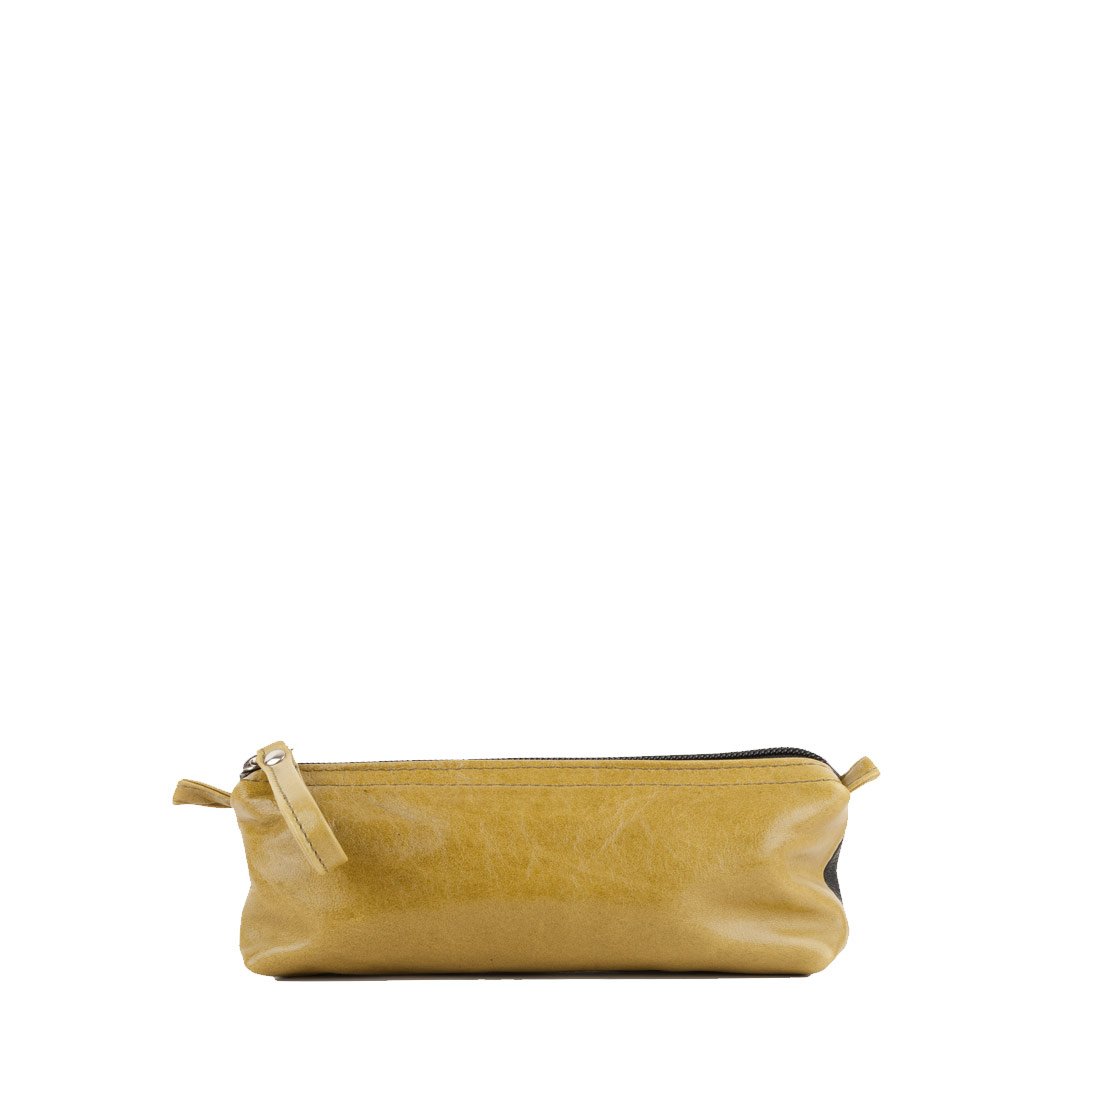 Make Up Bag in Lime